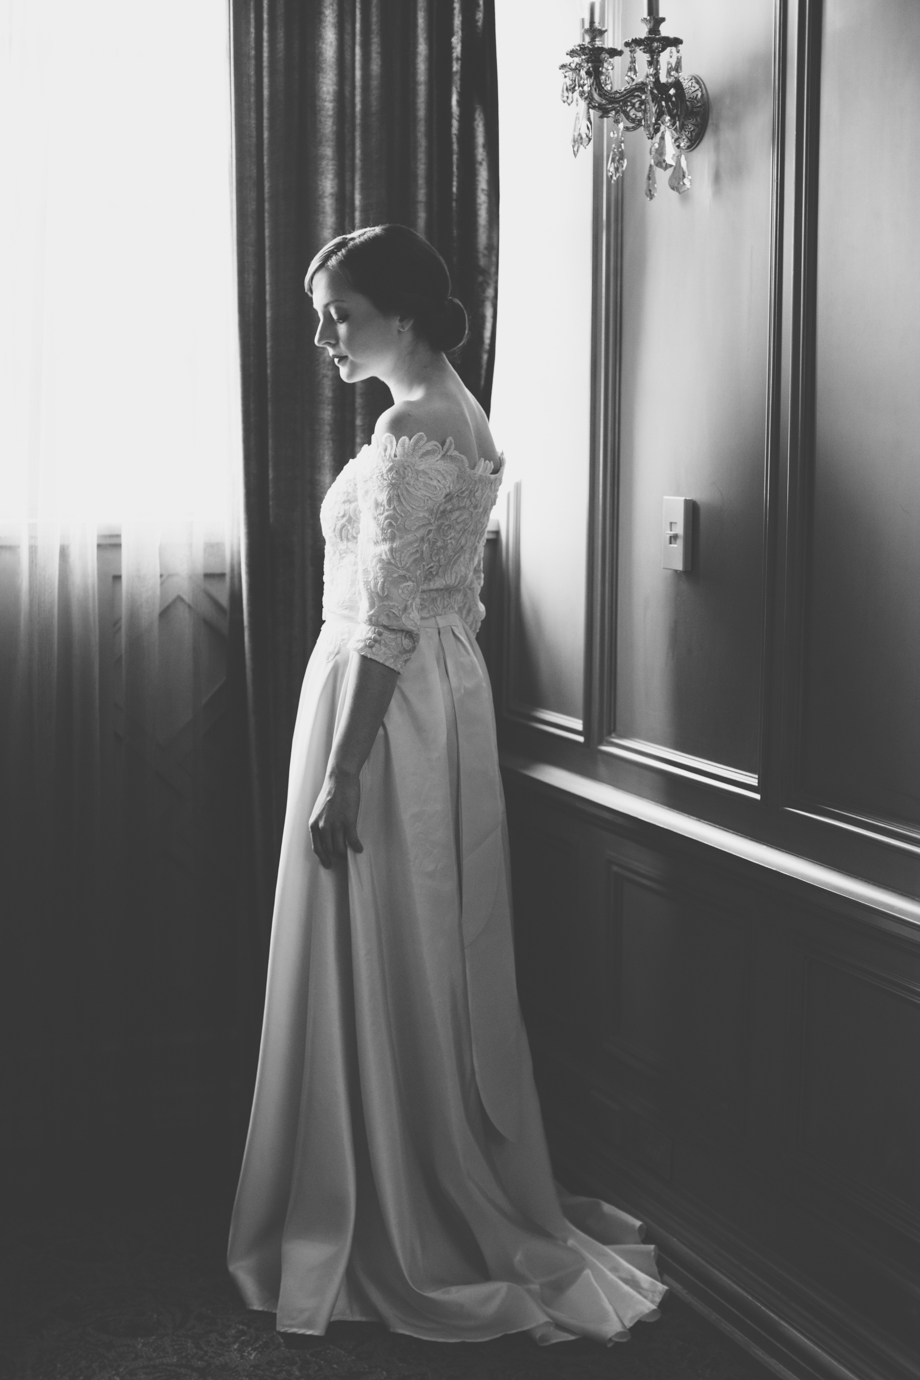 grace-grand-bohemian-wedding10.jpg